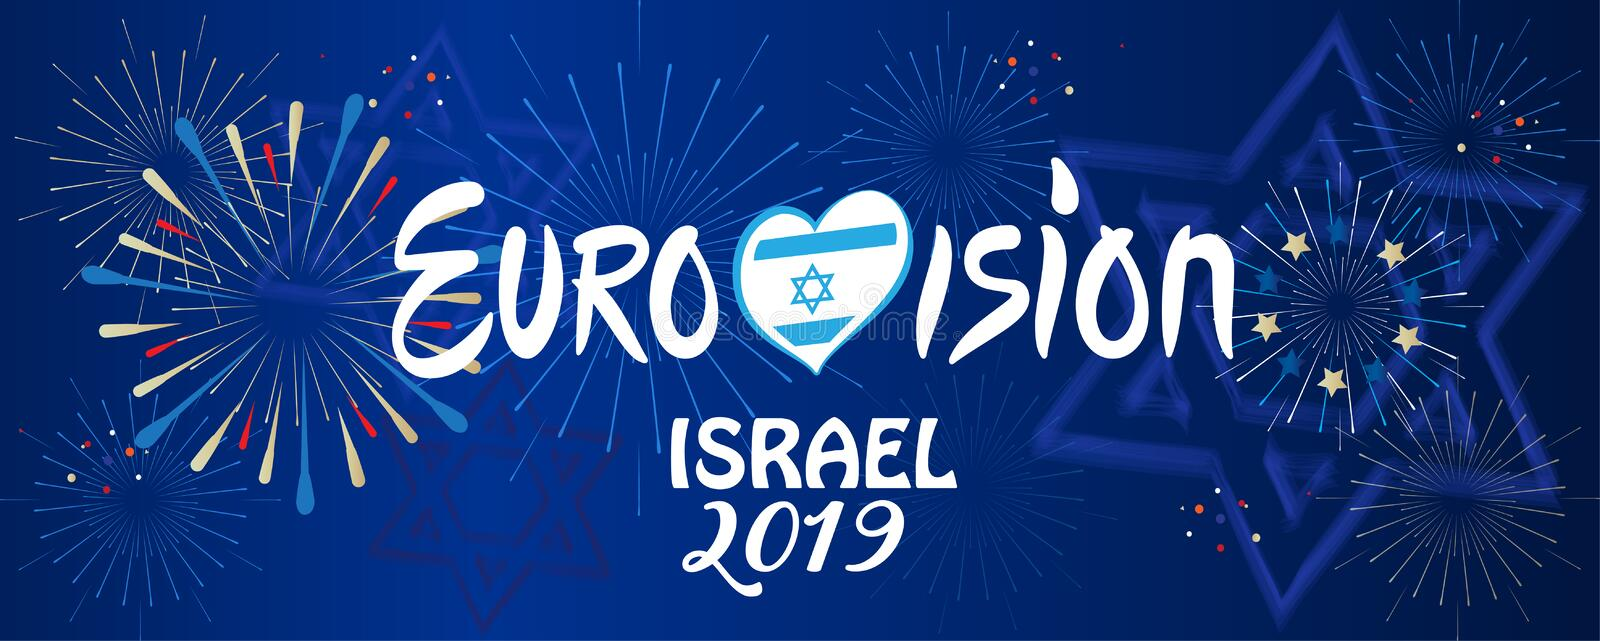 2019 Abstract Eurovision Song Contest International Music festival fireworks Israel. 2019 Abstract Eurovision Song Contest International Music festival fireworks vector illustration